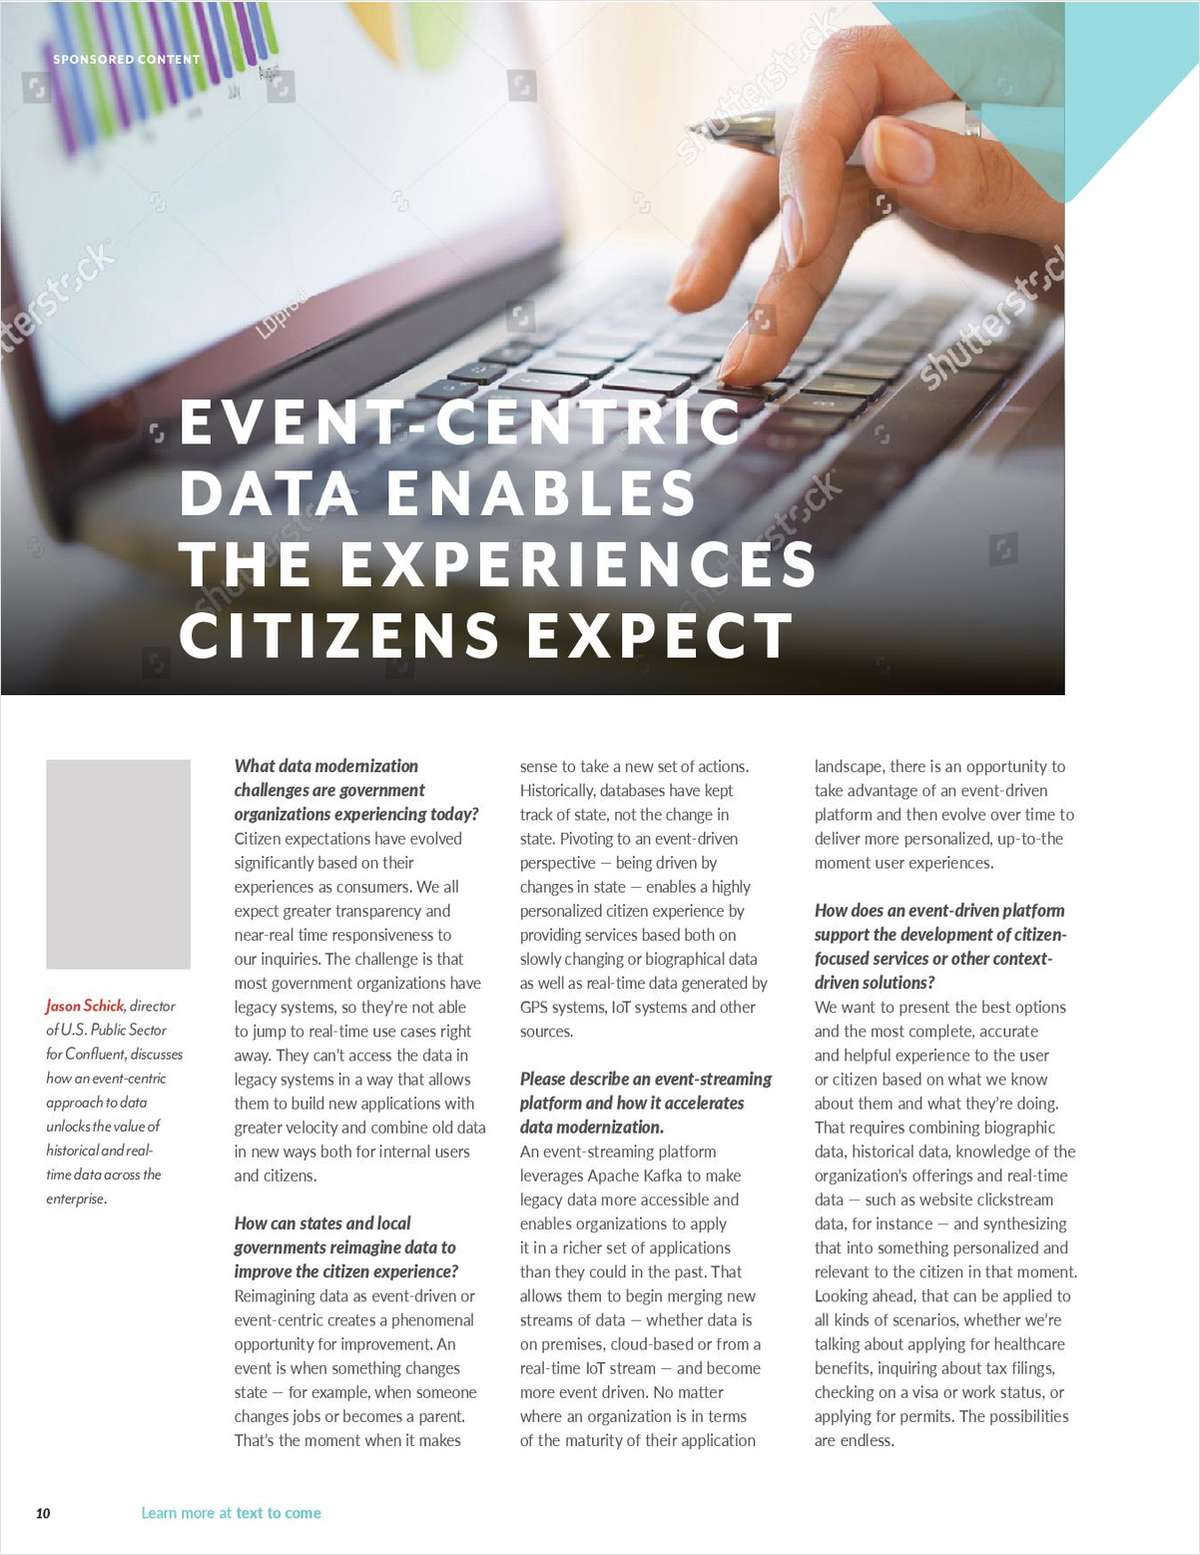 GovTech Interview: Event-Centric Data Enables the Experiences Citizens Expect